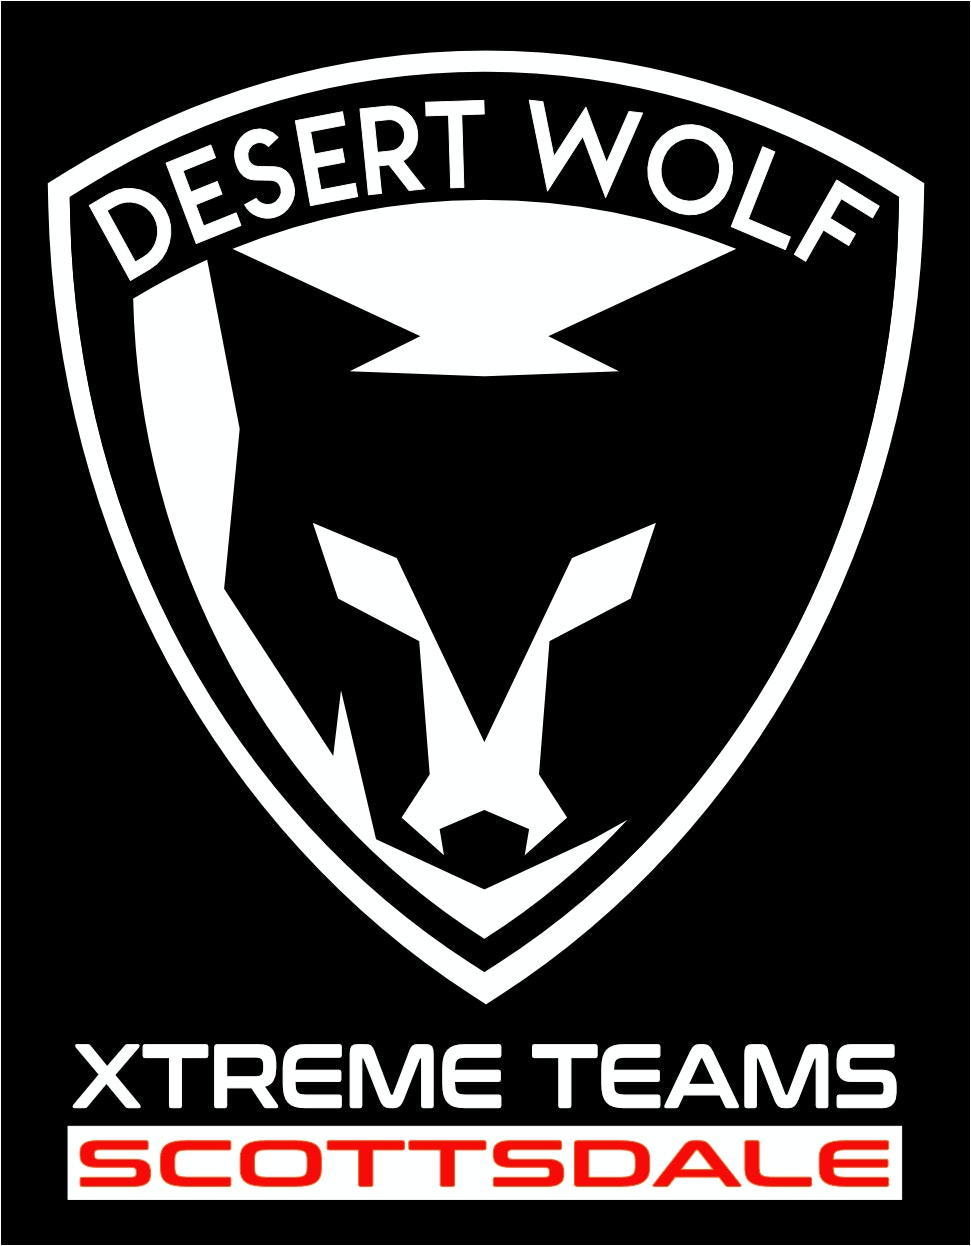 DESERT WOLF XTREME TEAMS SCOTTSDALE